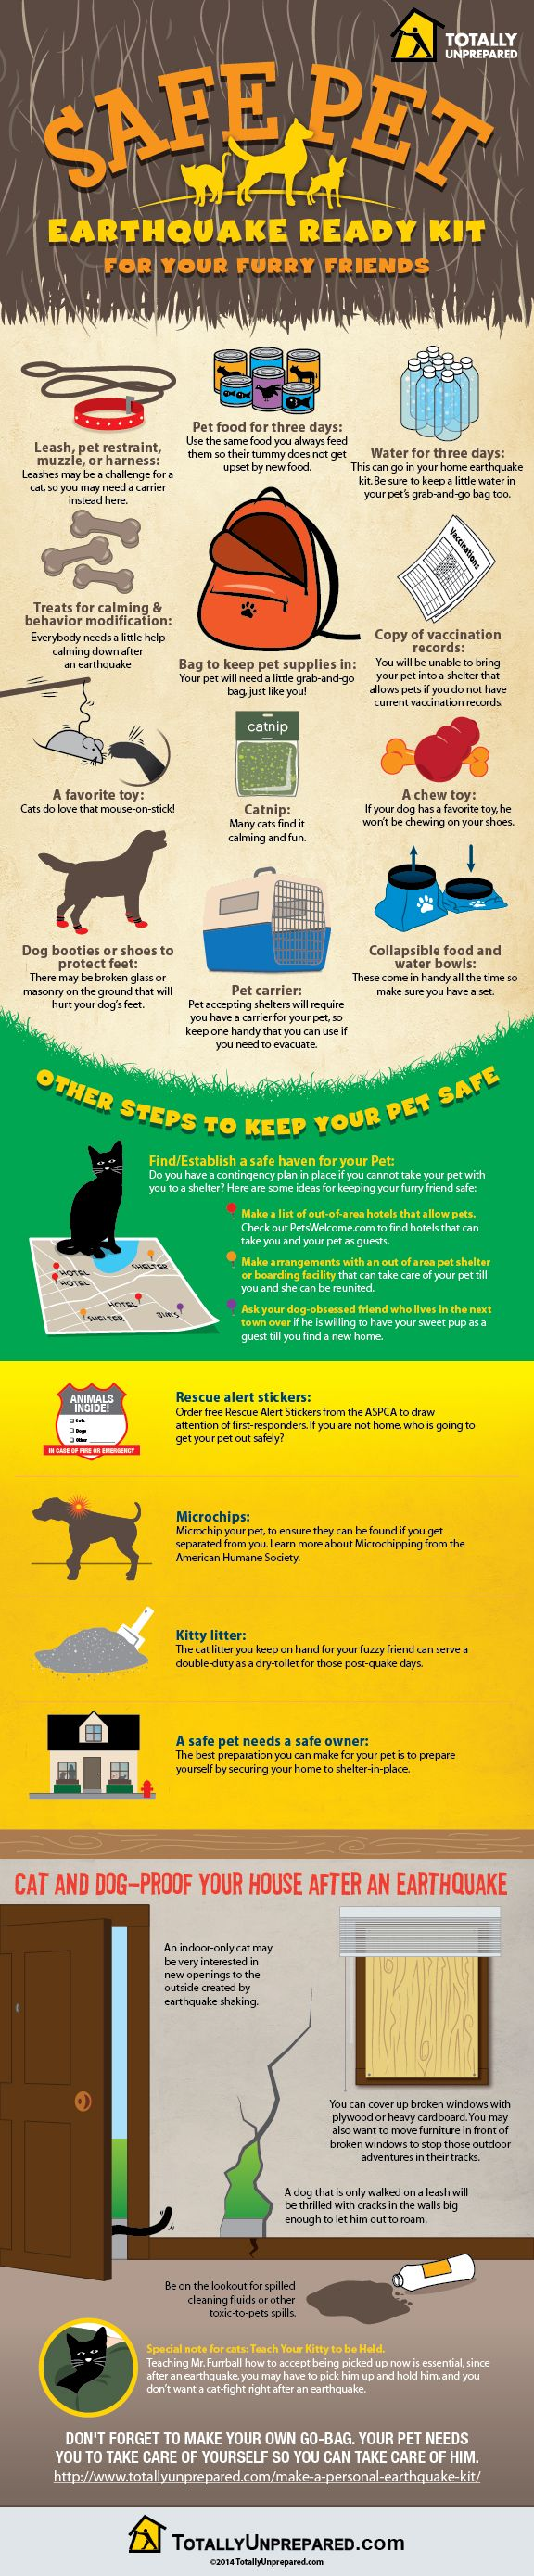 Safe Pet earthquake kit